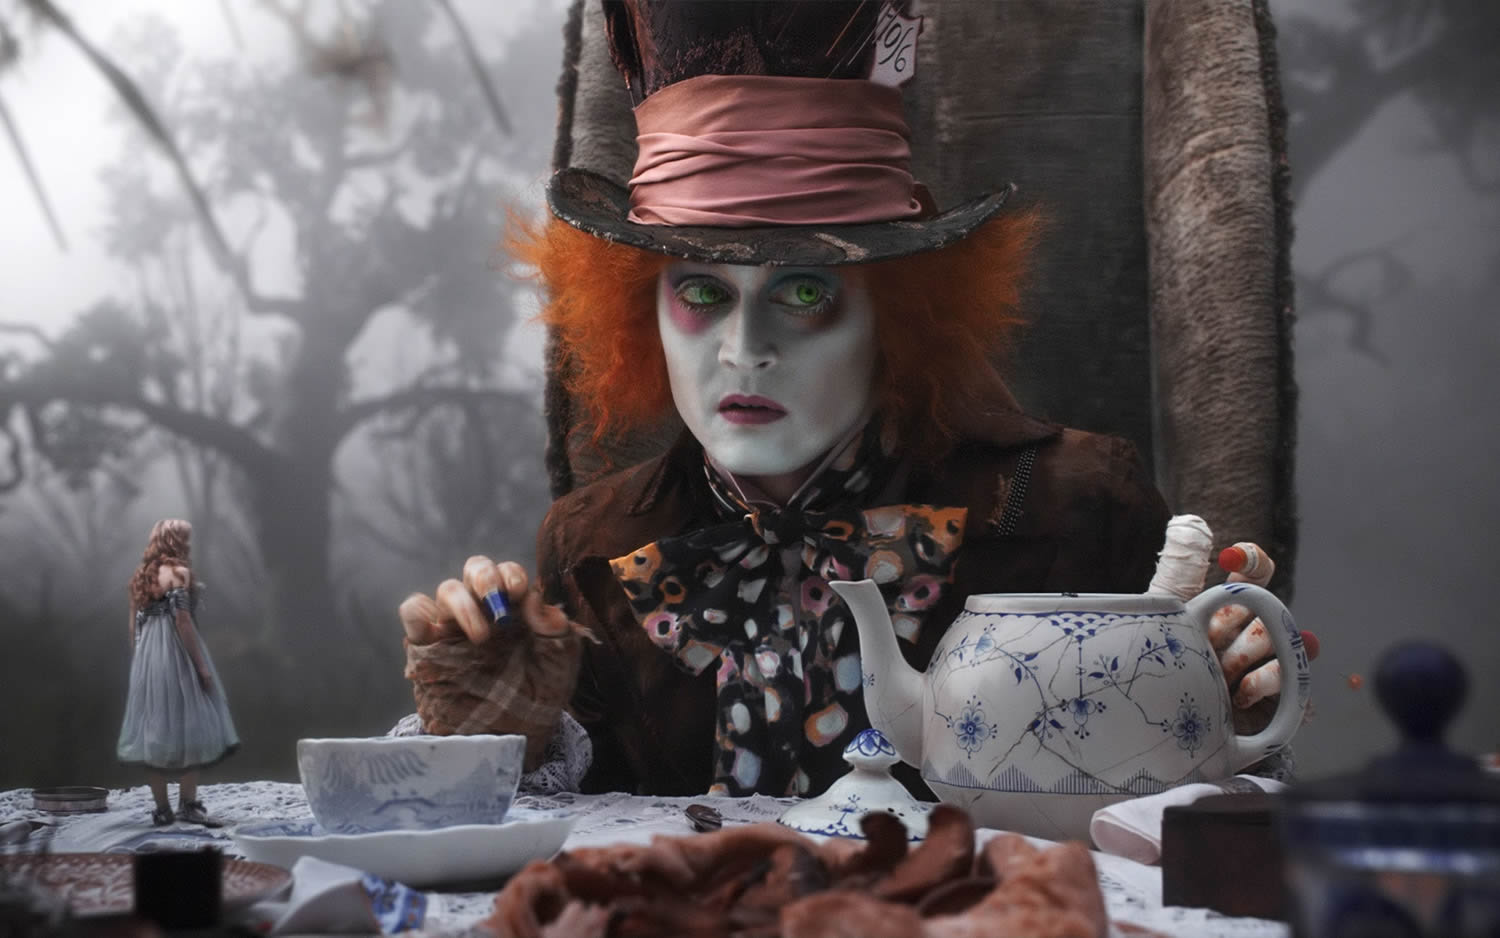 the mad hatter (johnny depp) in alice in wonderland